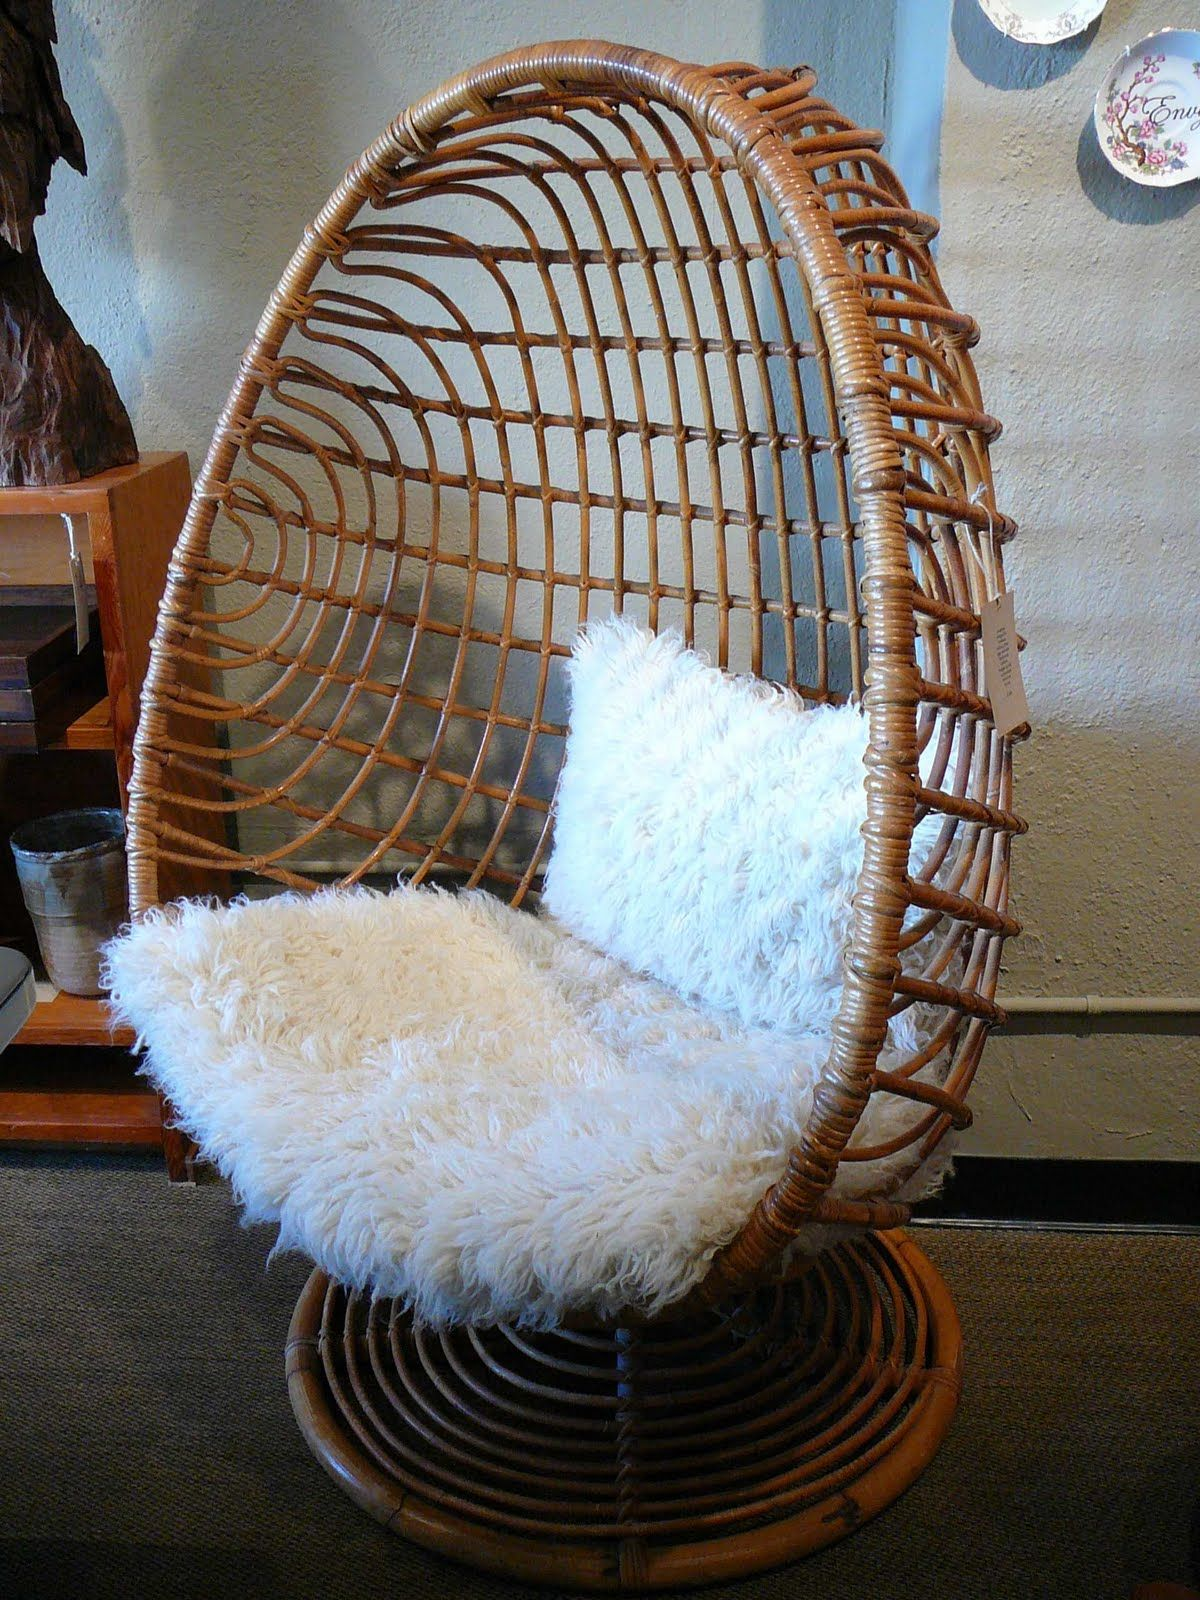 Fuzzy Chairs 60 39s Egg Chair It Looks Fuzzy Awesome House Ideas